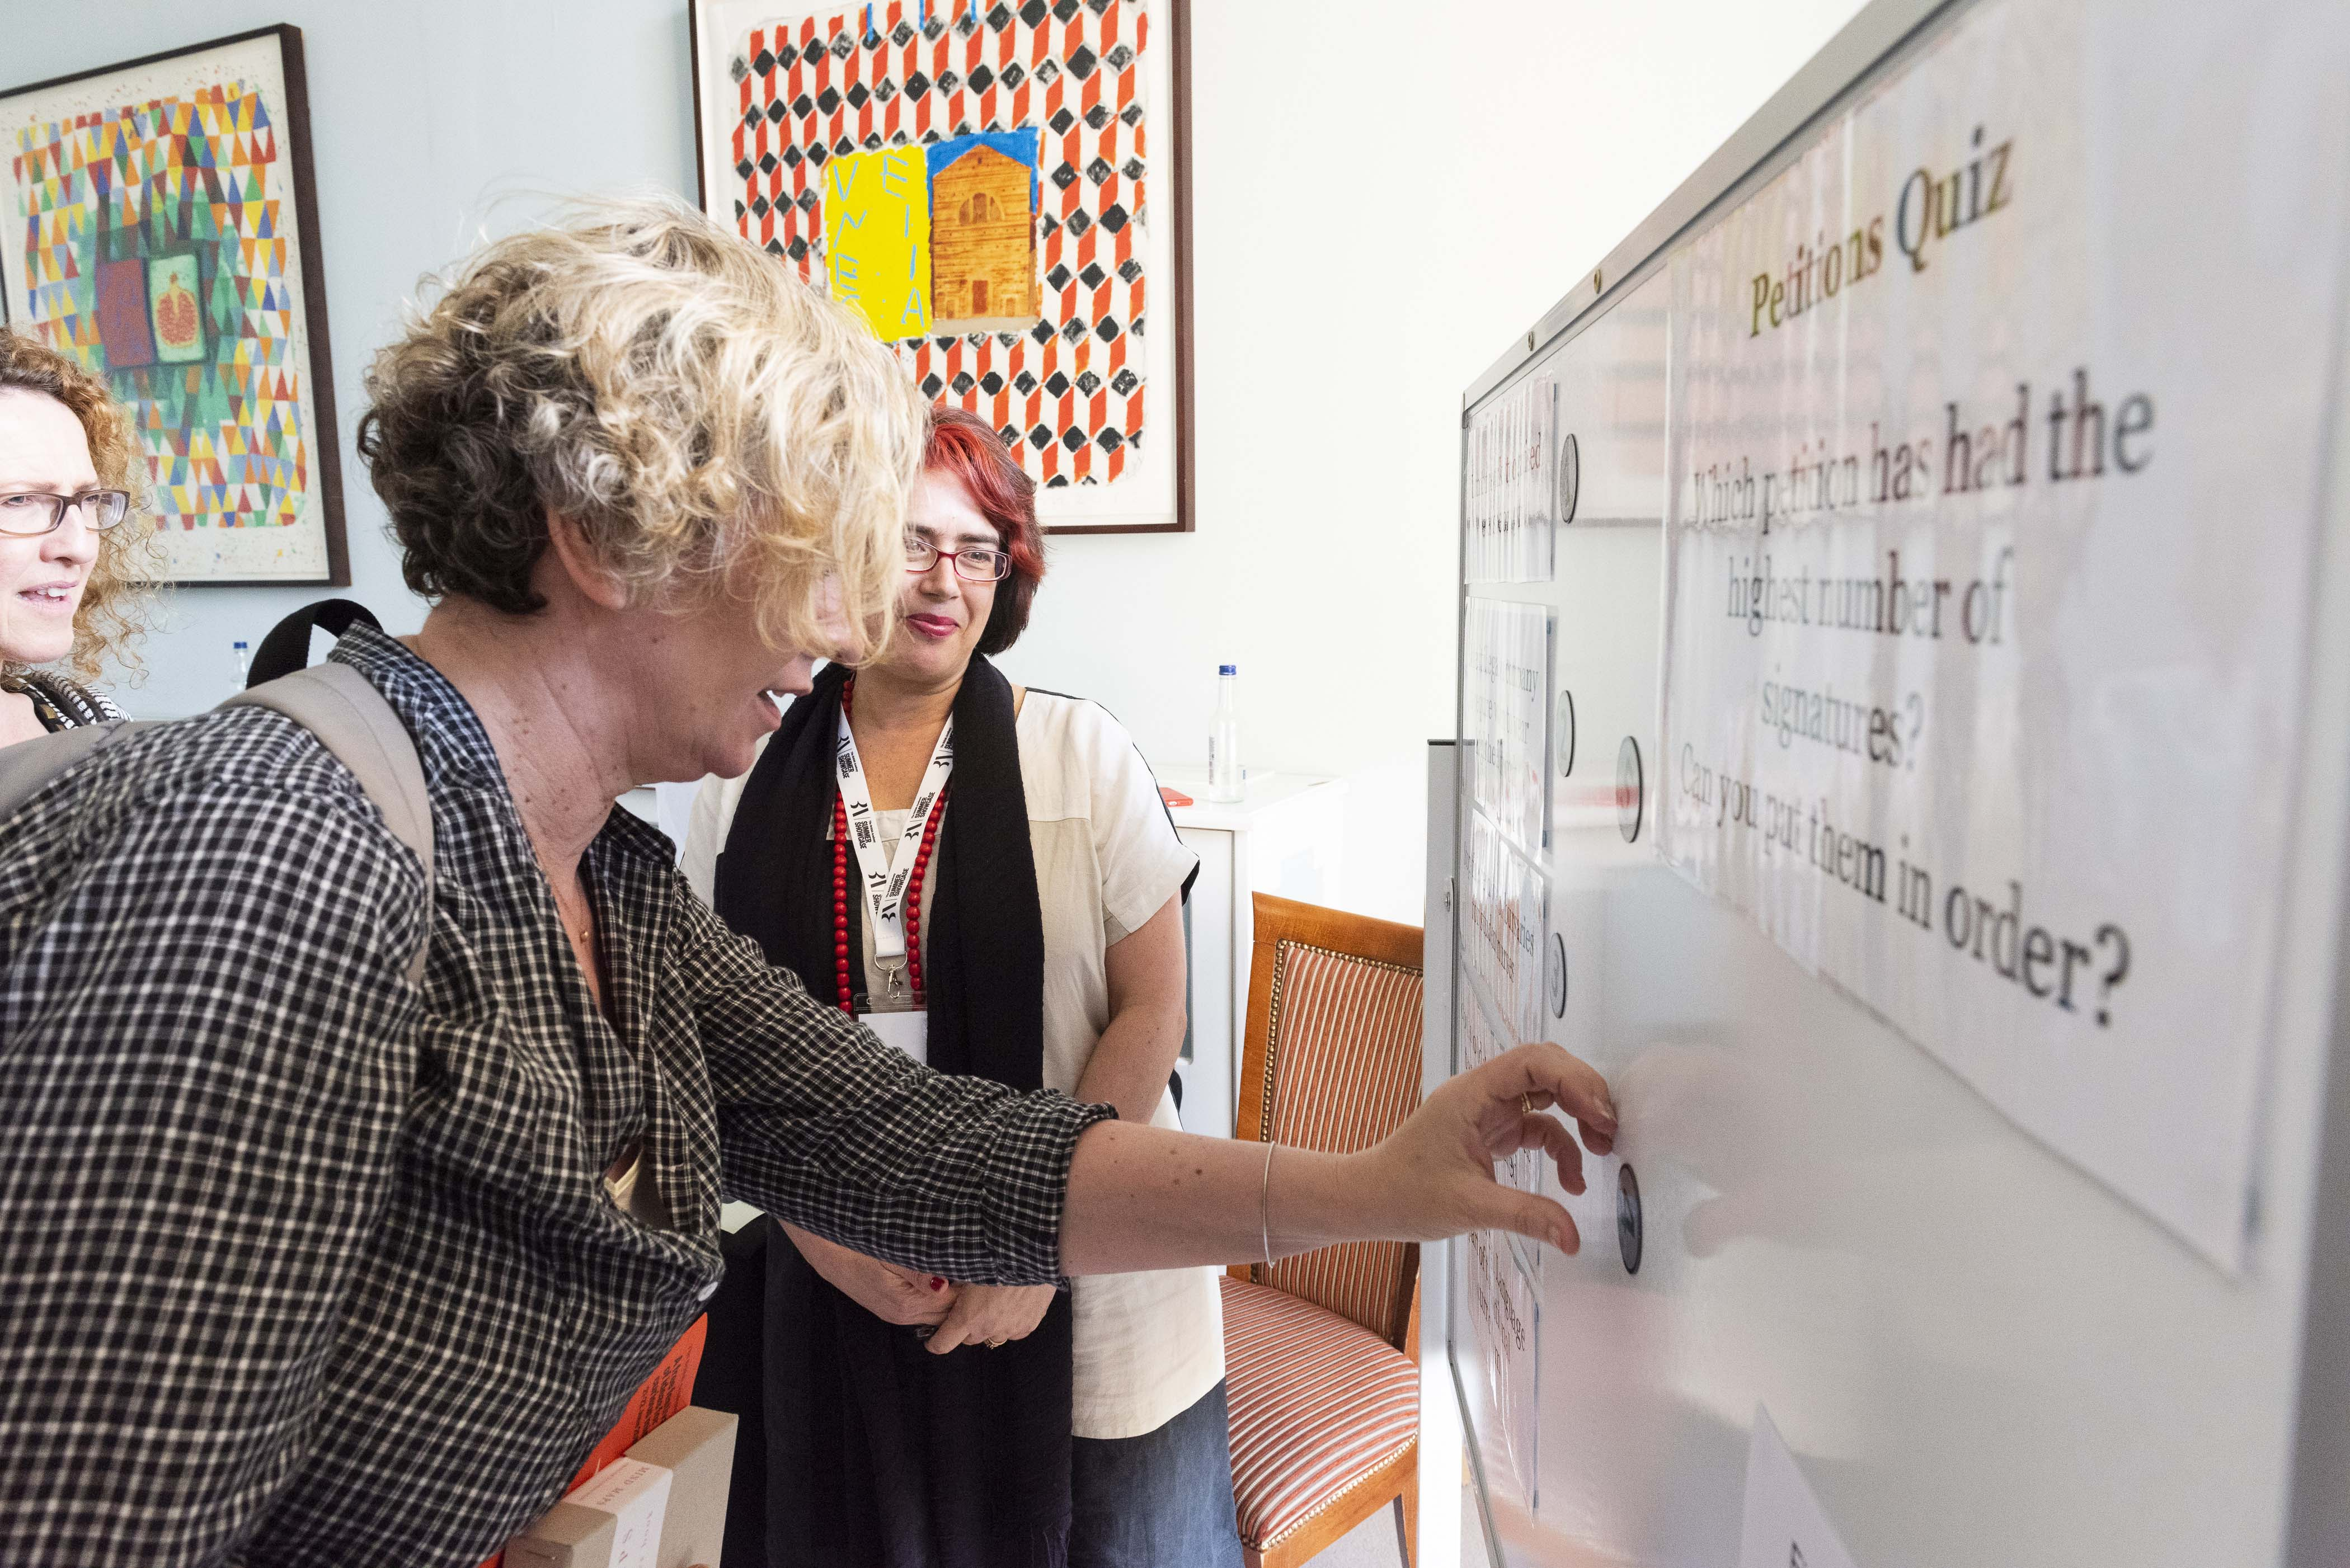 Professor Leston-Bandeira's research on public engagement showcased in major exhibition